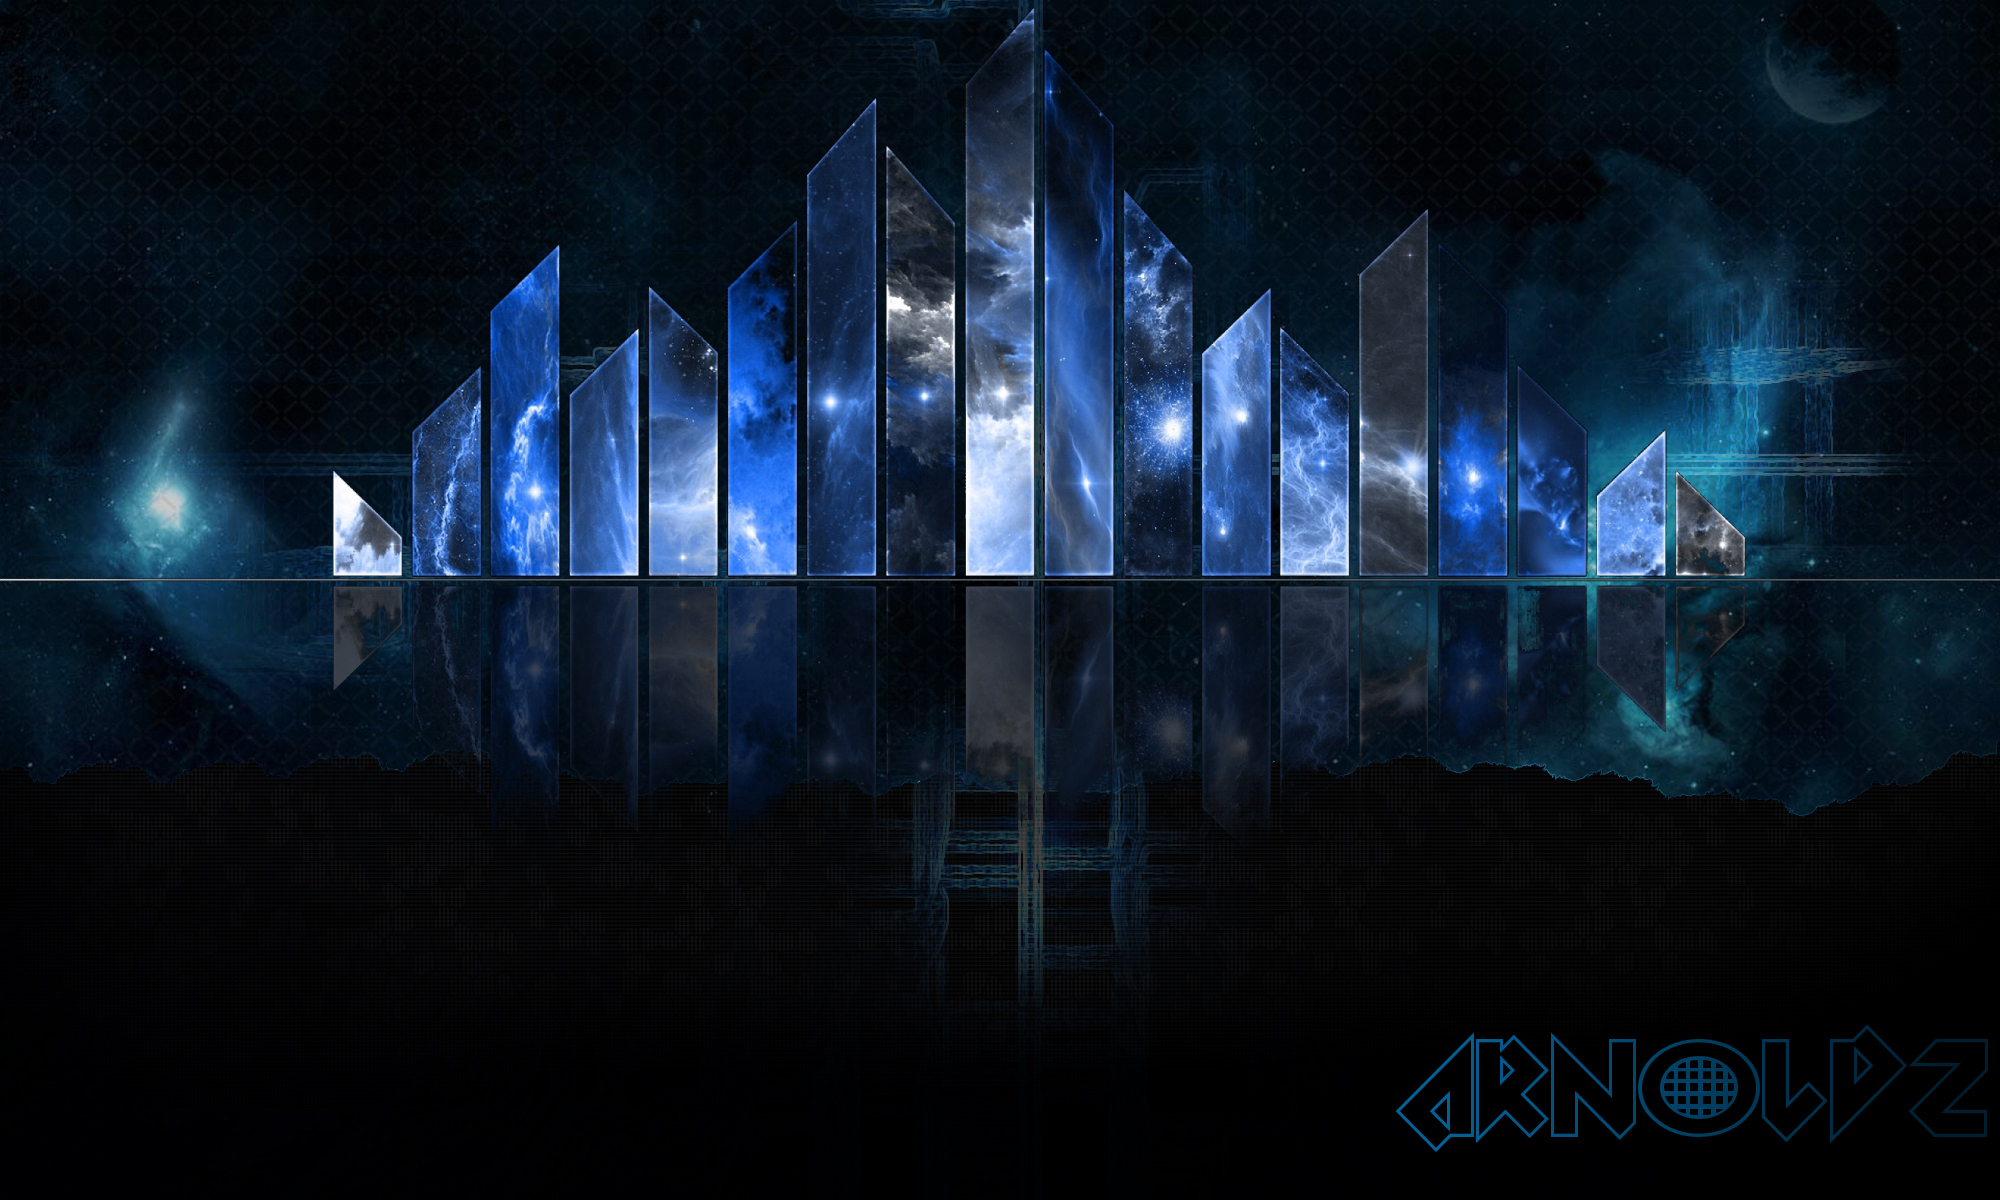 abstract blue background wallpaper hd by iarnoldz on